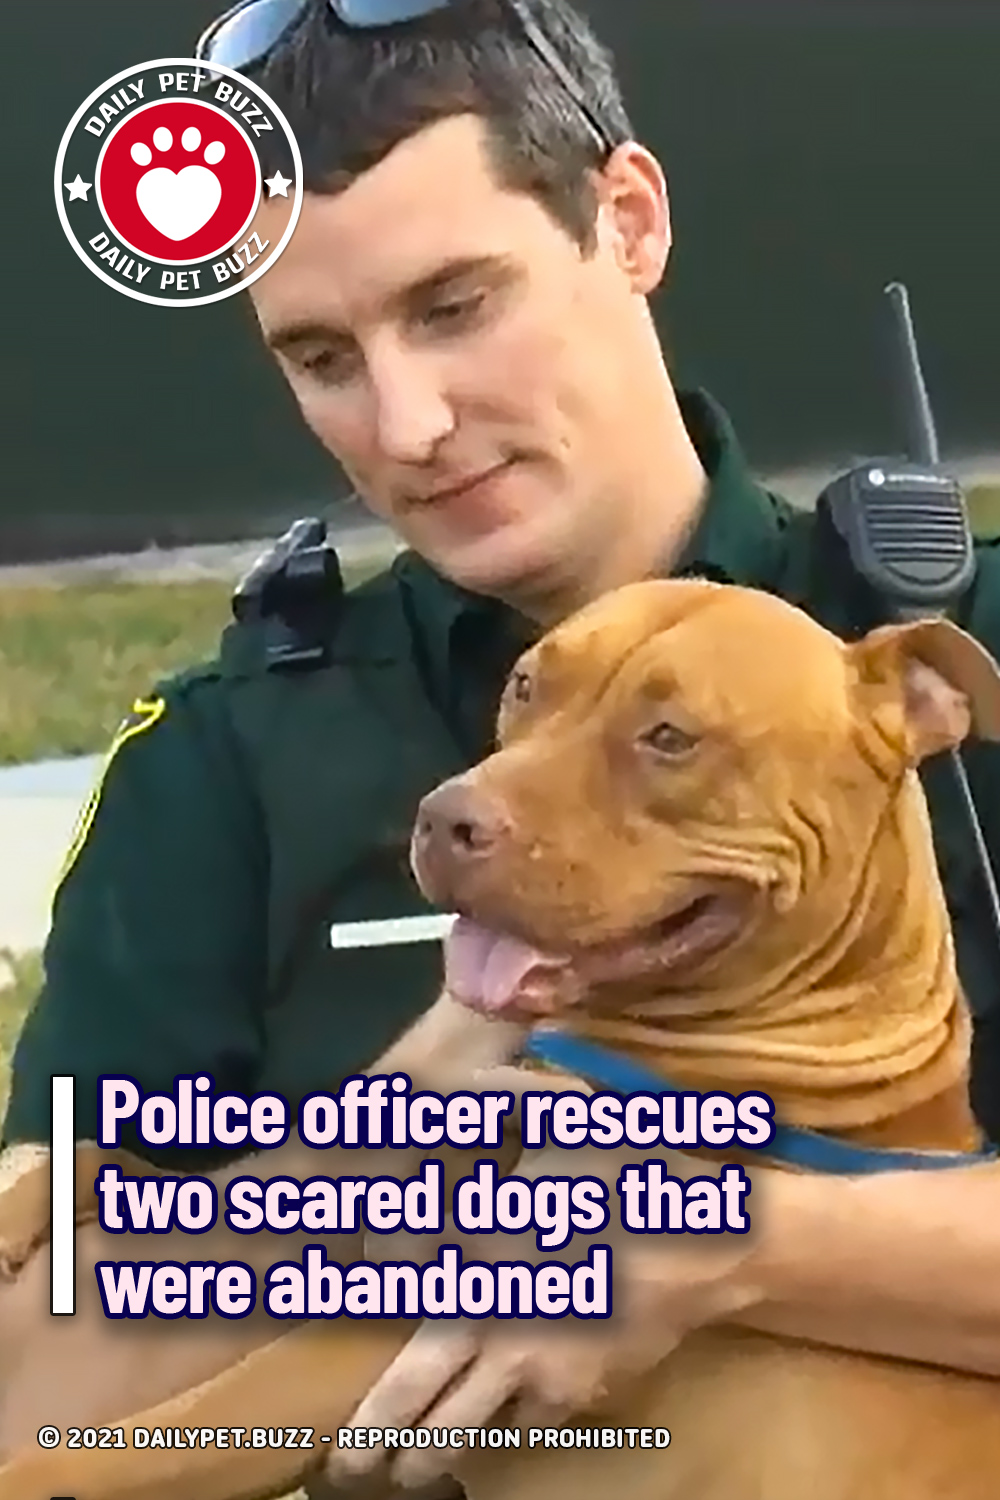 Police officer rescues two scared dogs that were abandoned